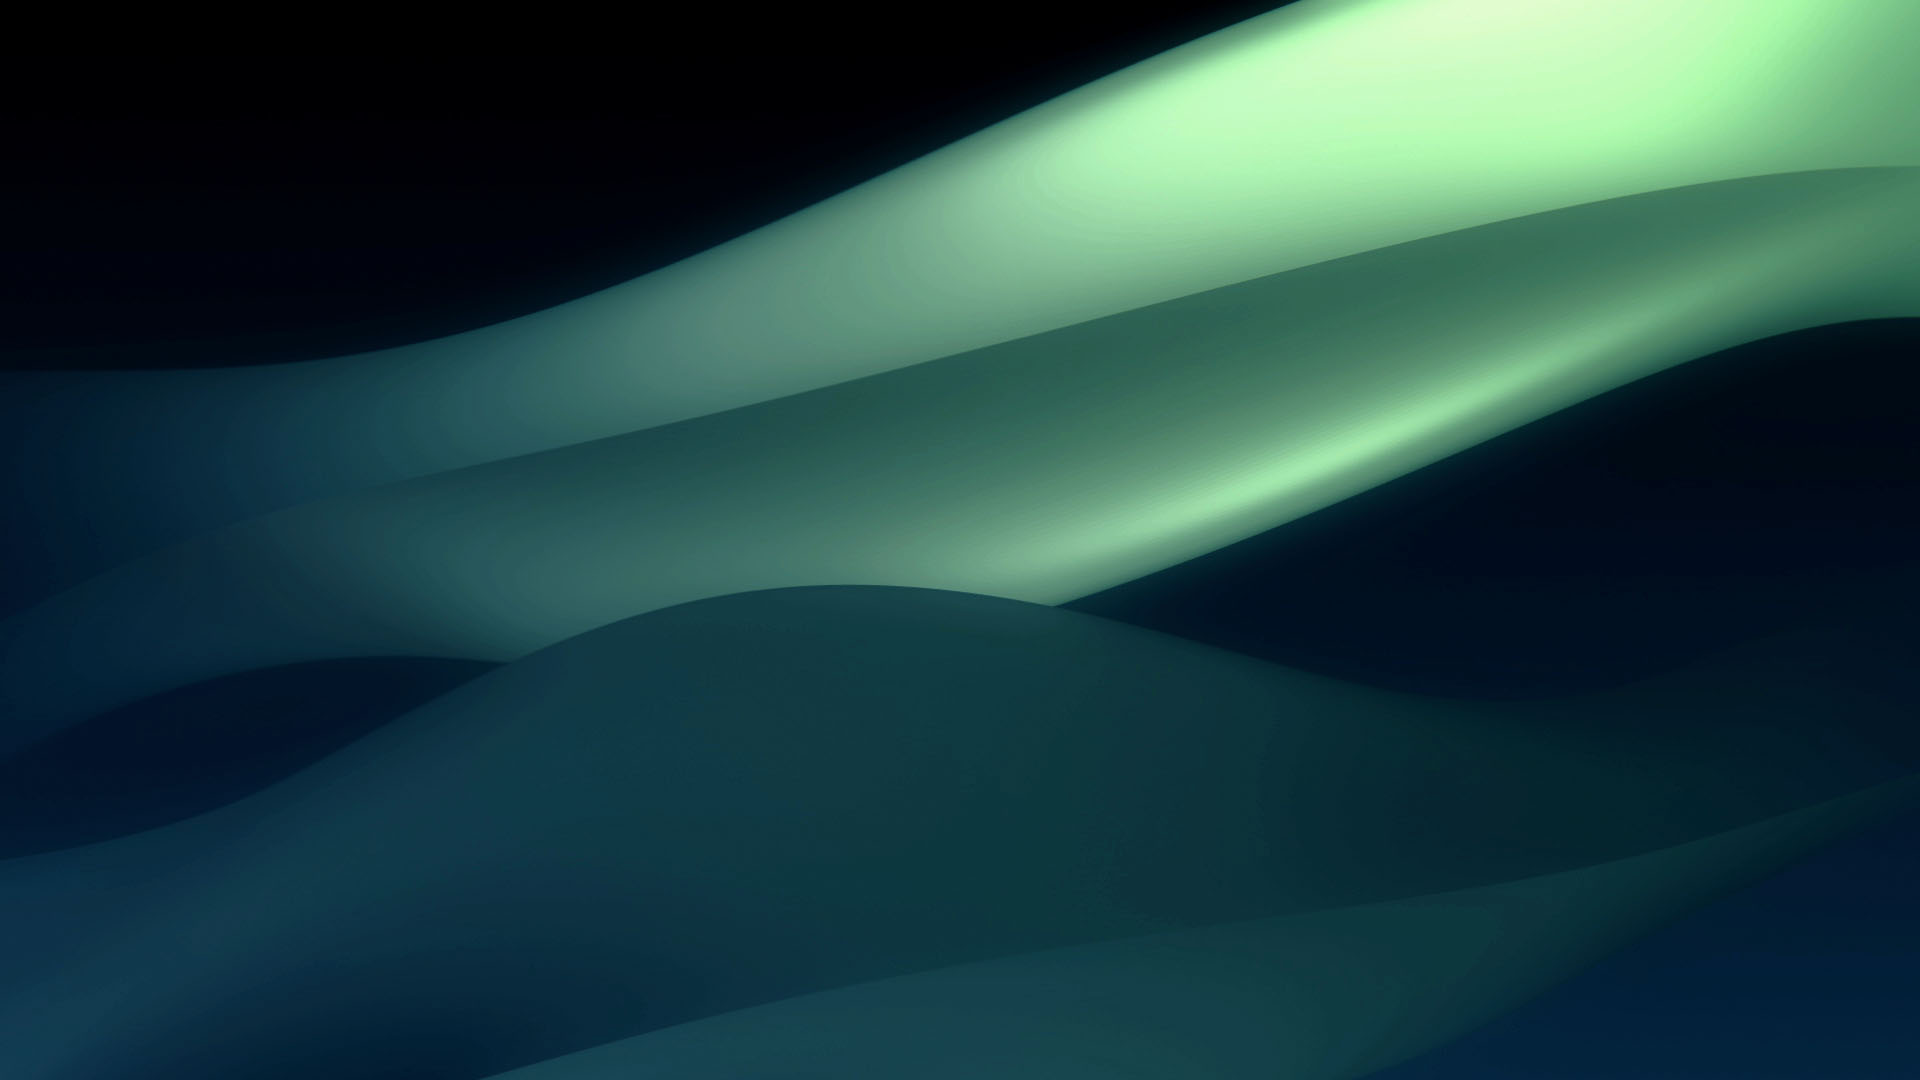 Free VJ Clips for Live Visuals - Liquid Silk (HD) | DocOptic